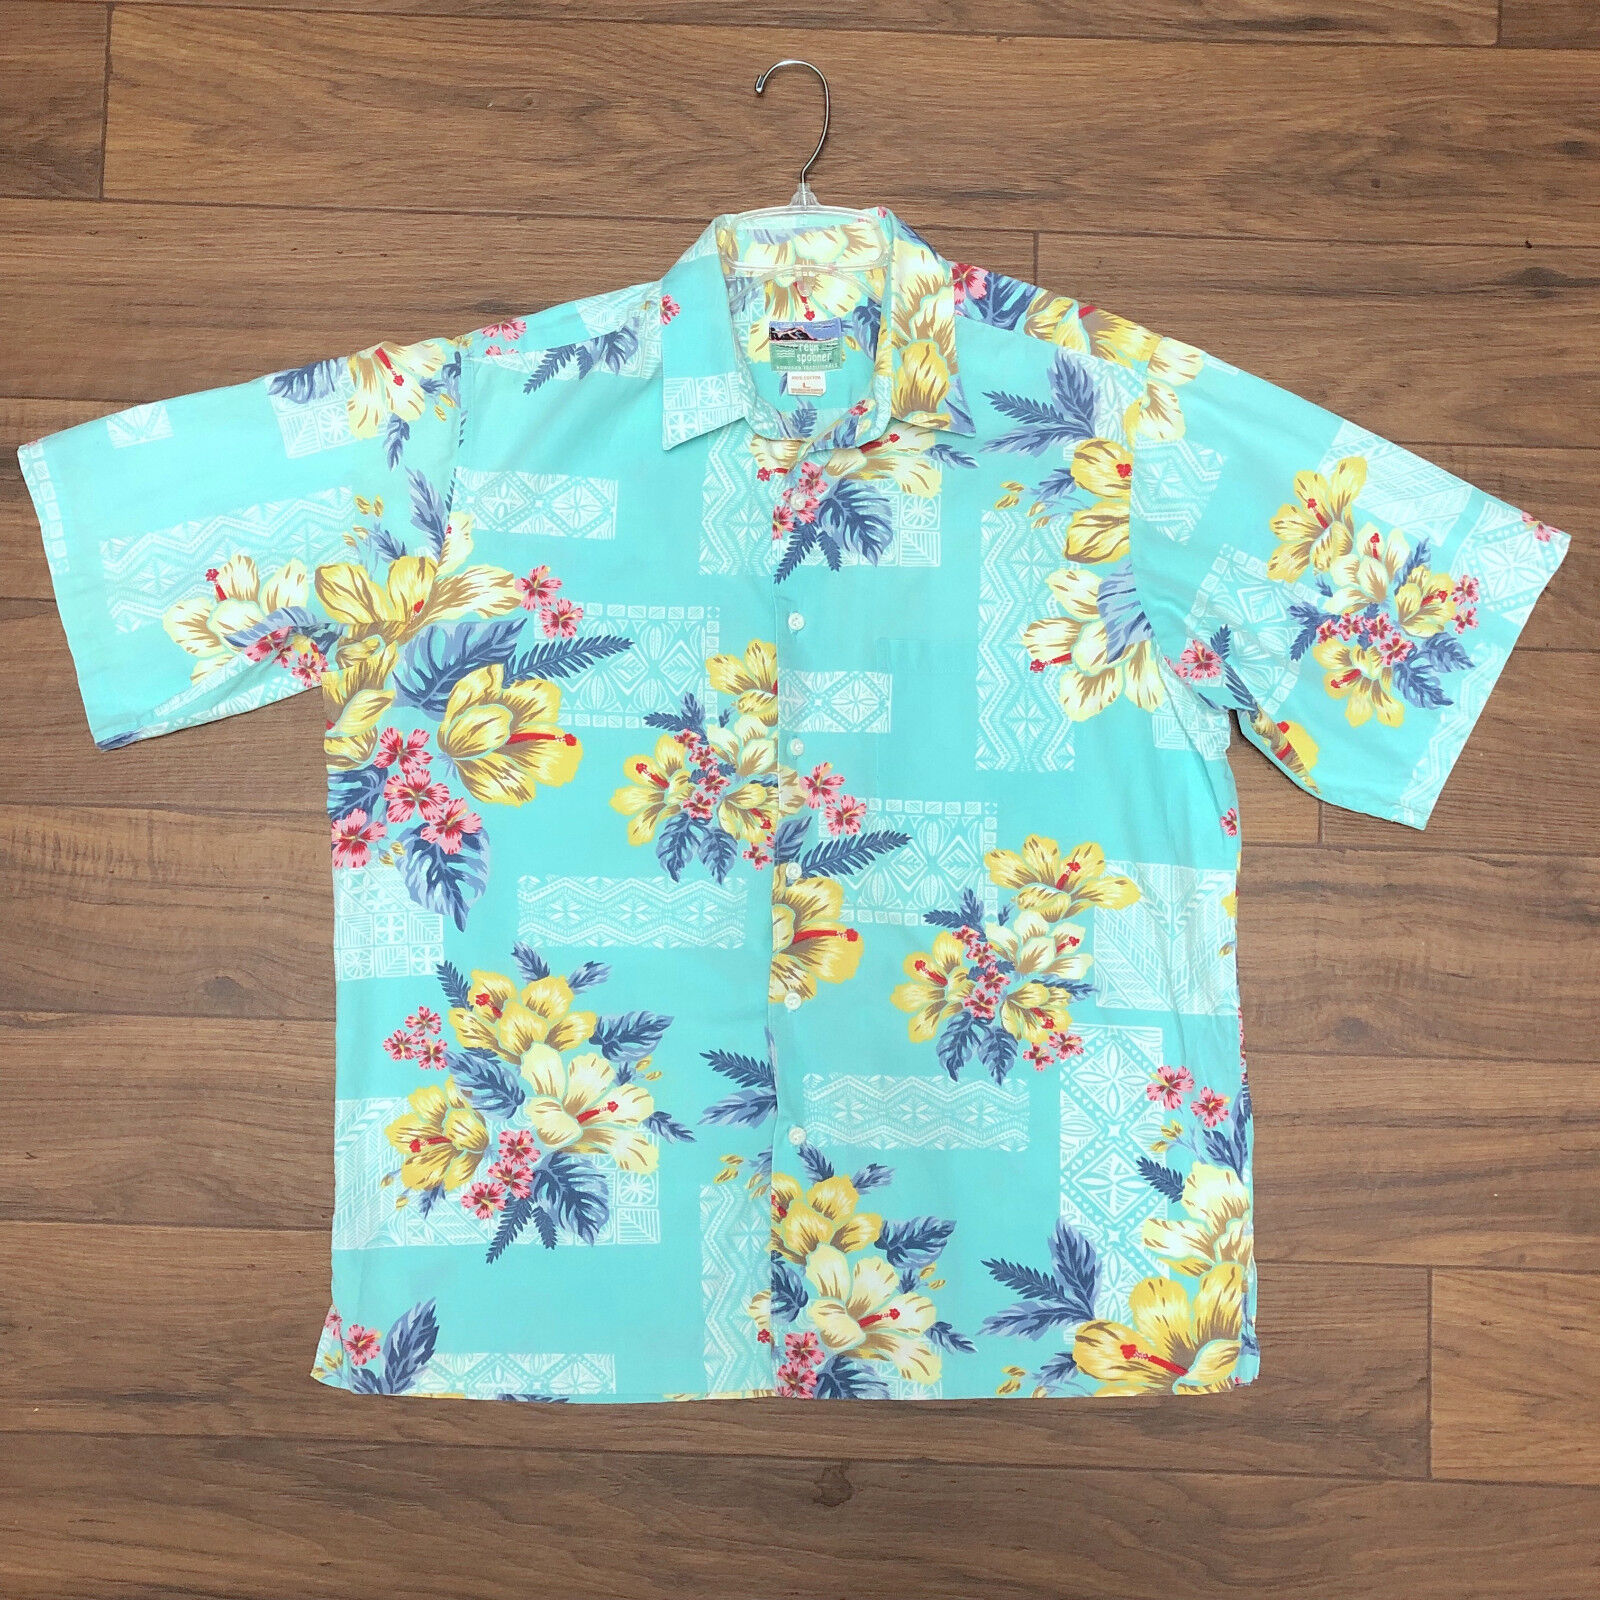 Reyn Spooner Hawaiian Floral Flowers Tiki Teal Green Button Shirt Men's - LARGE